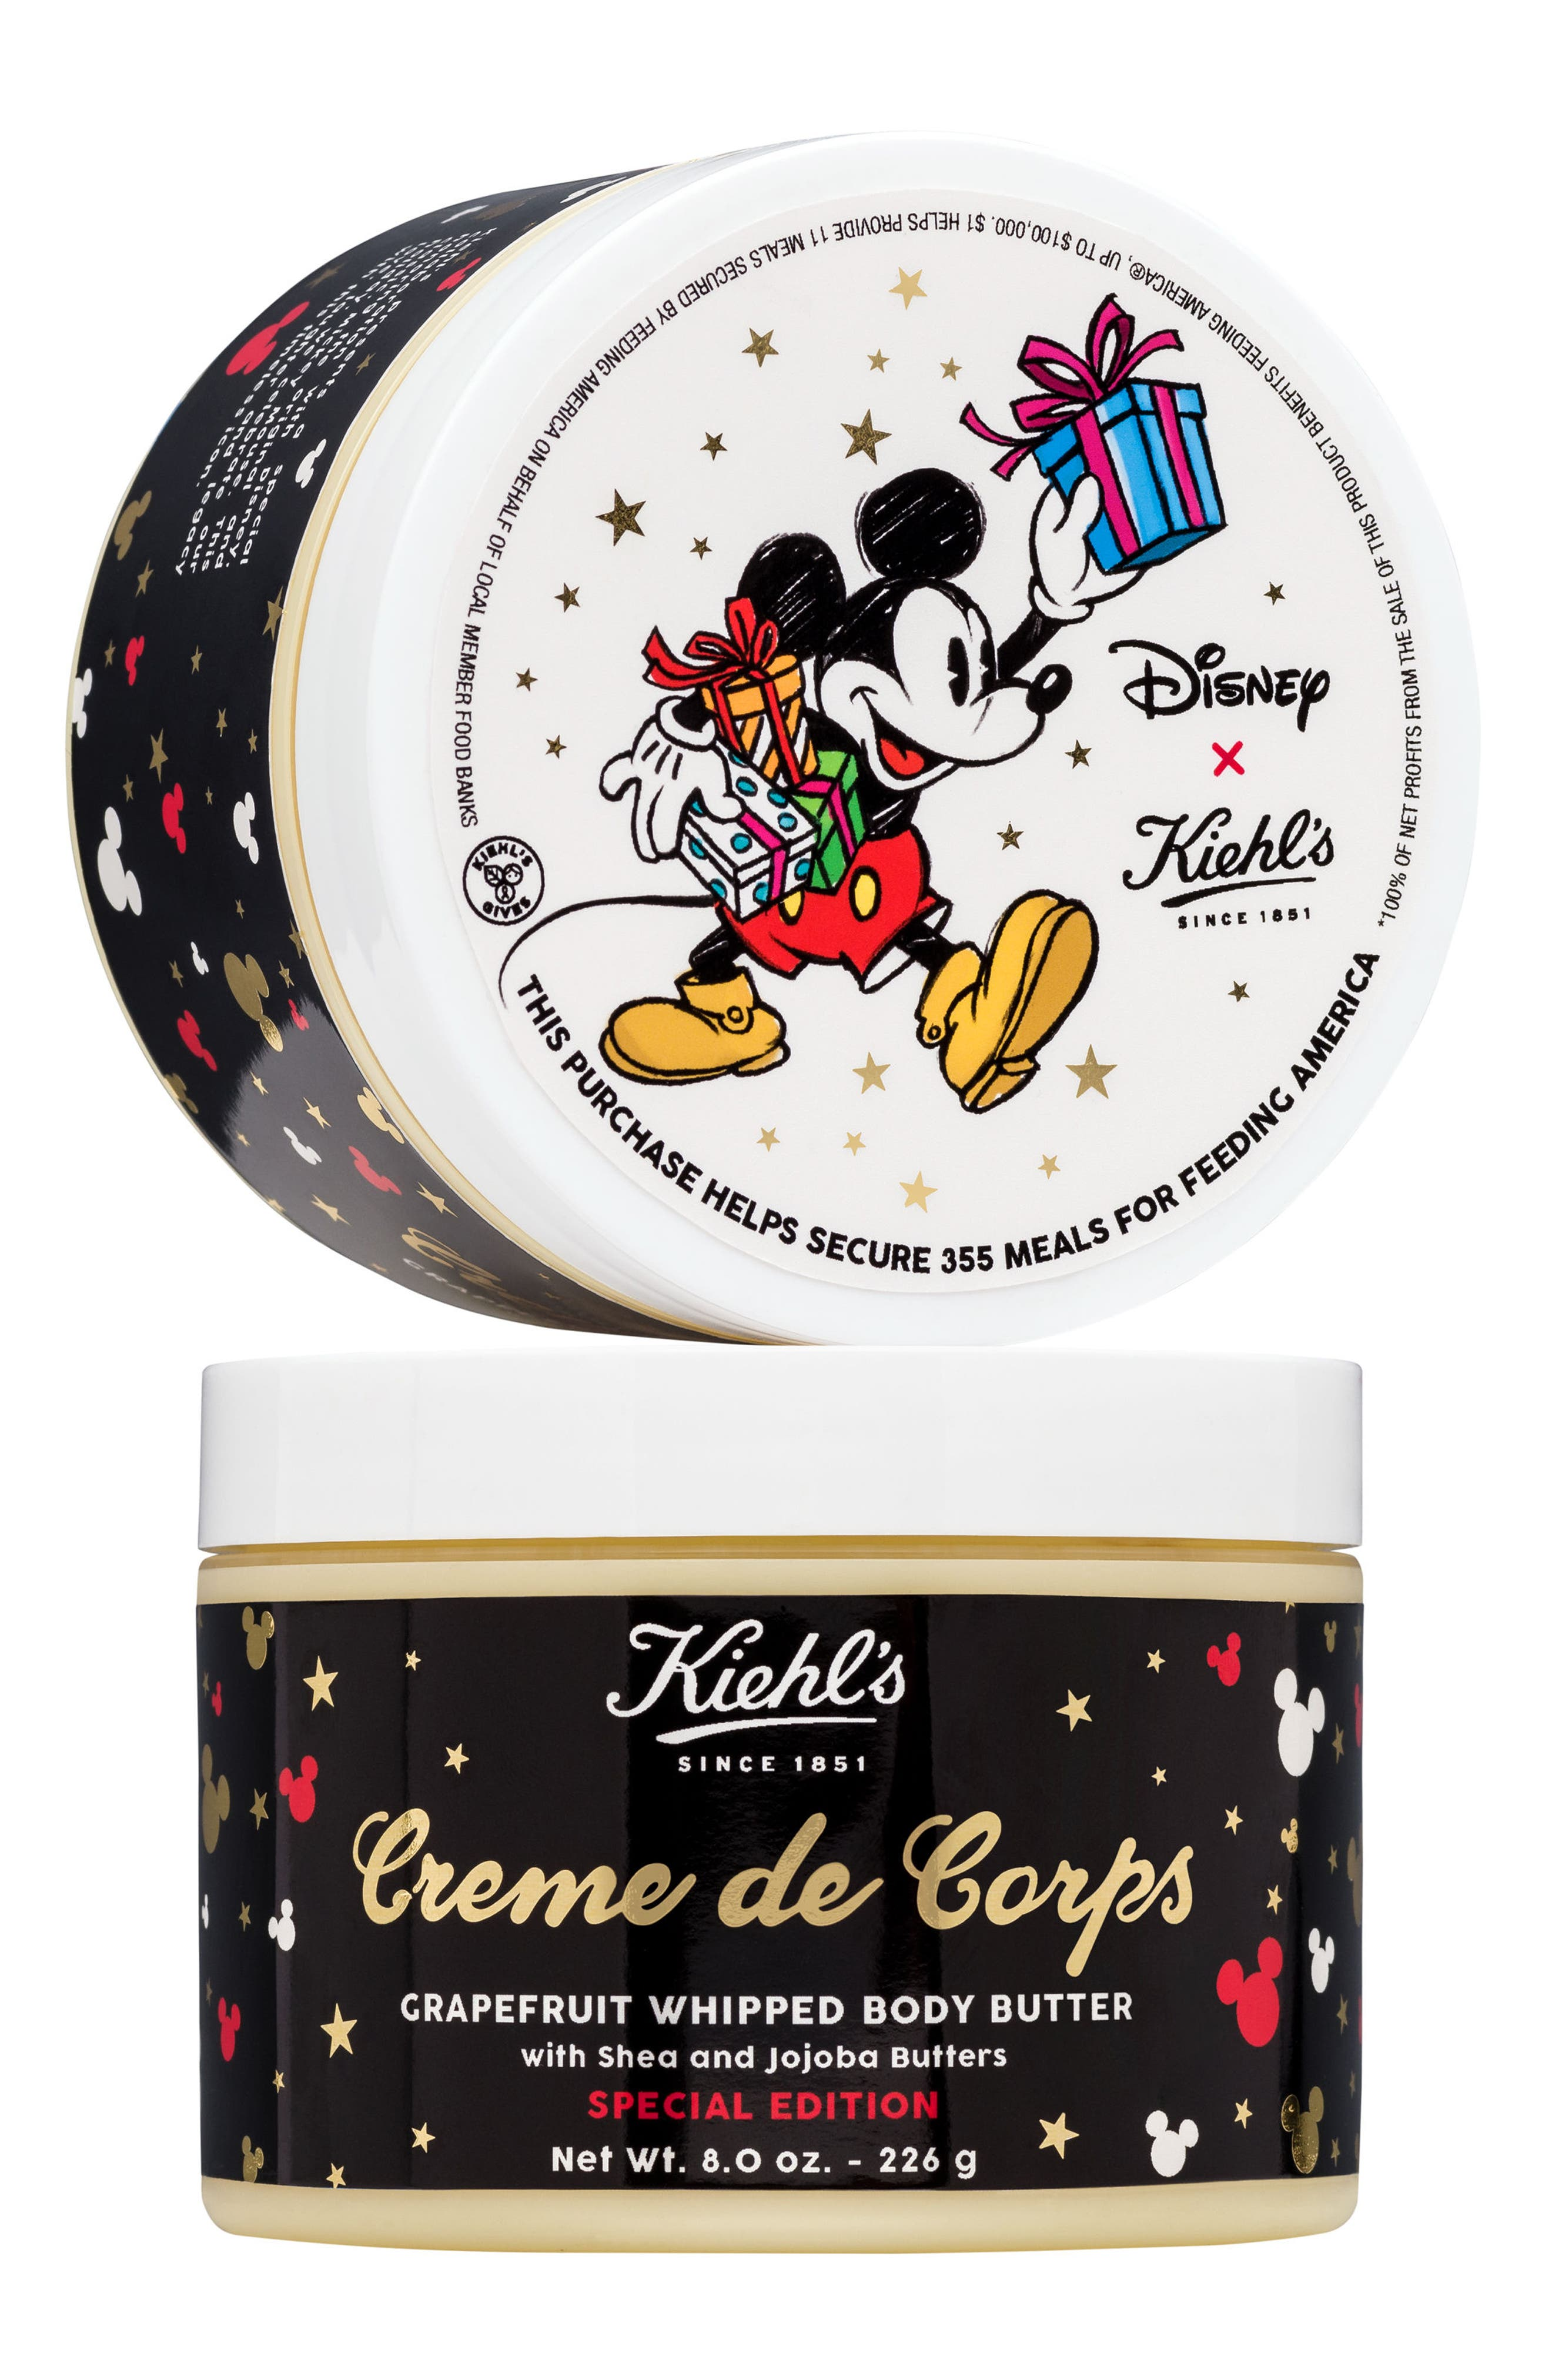 Disney x Kiehl's Since 1851 Creme de Corps Grapefruit Whipped Body Butter